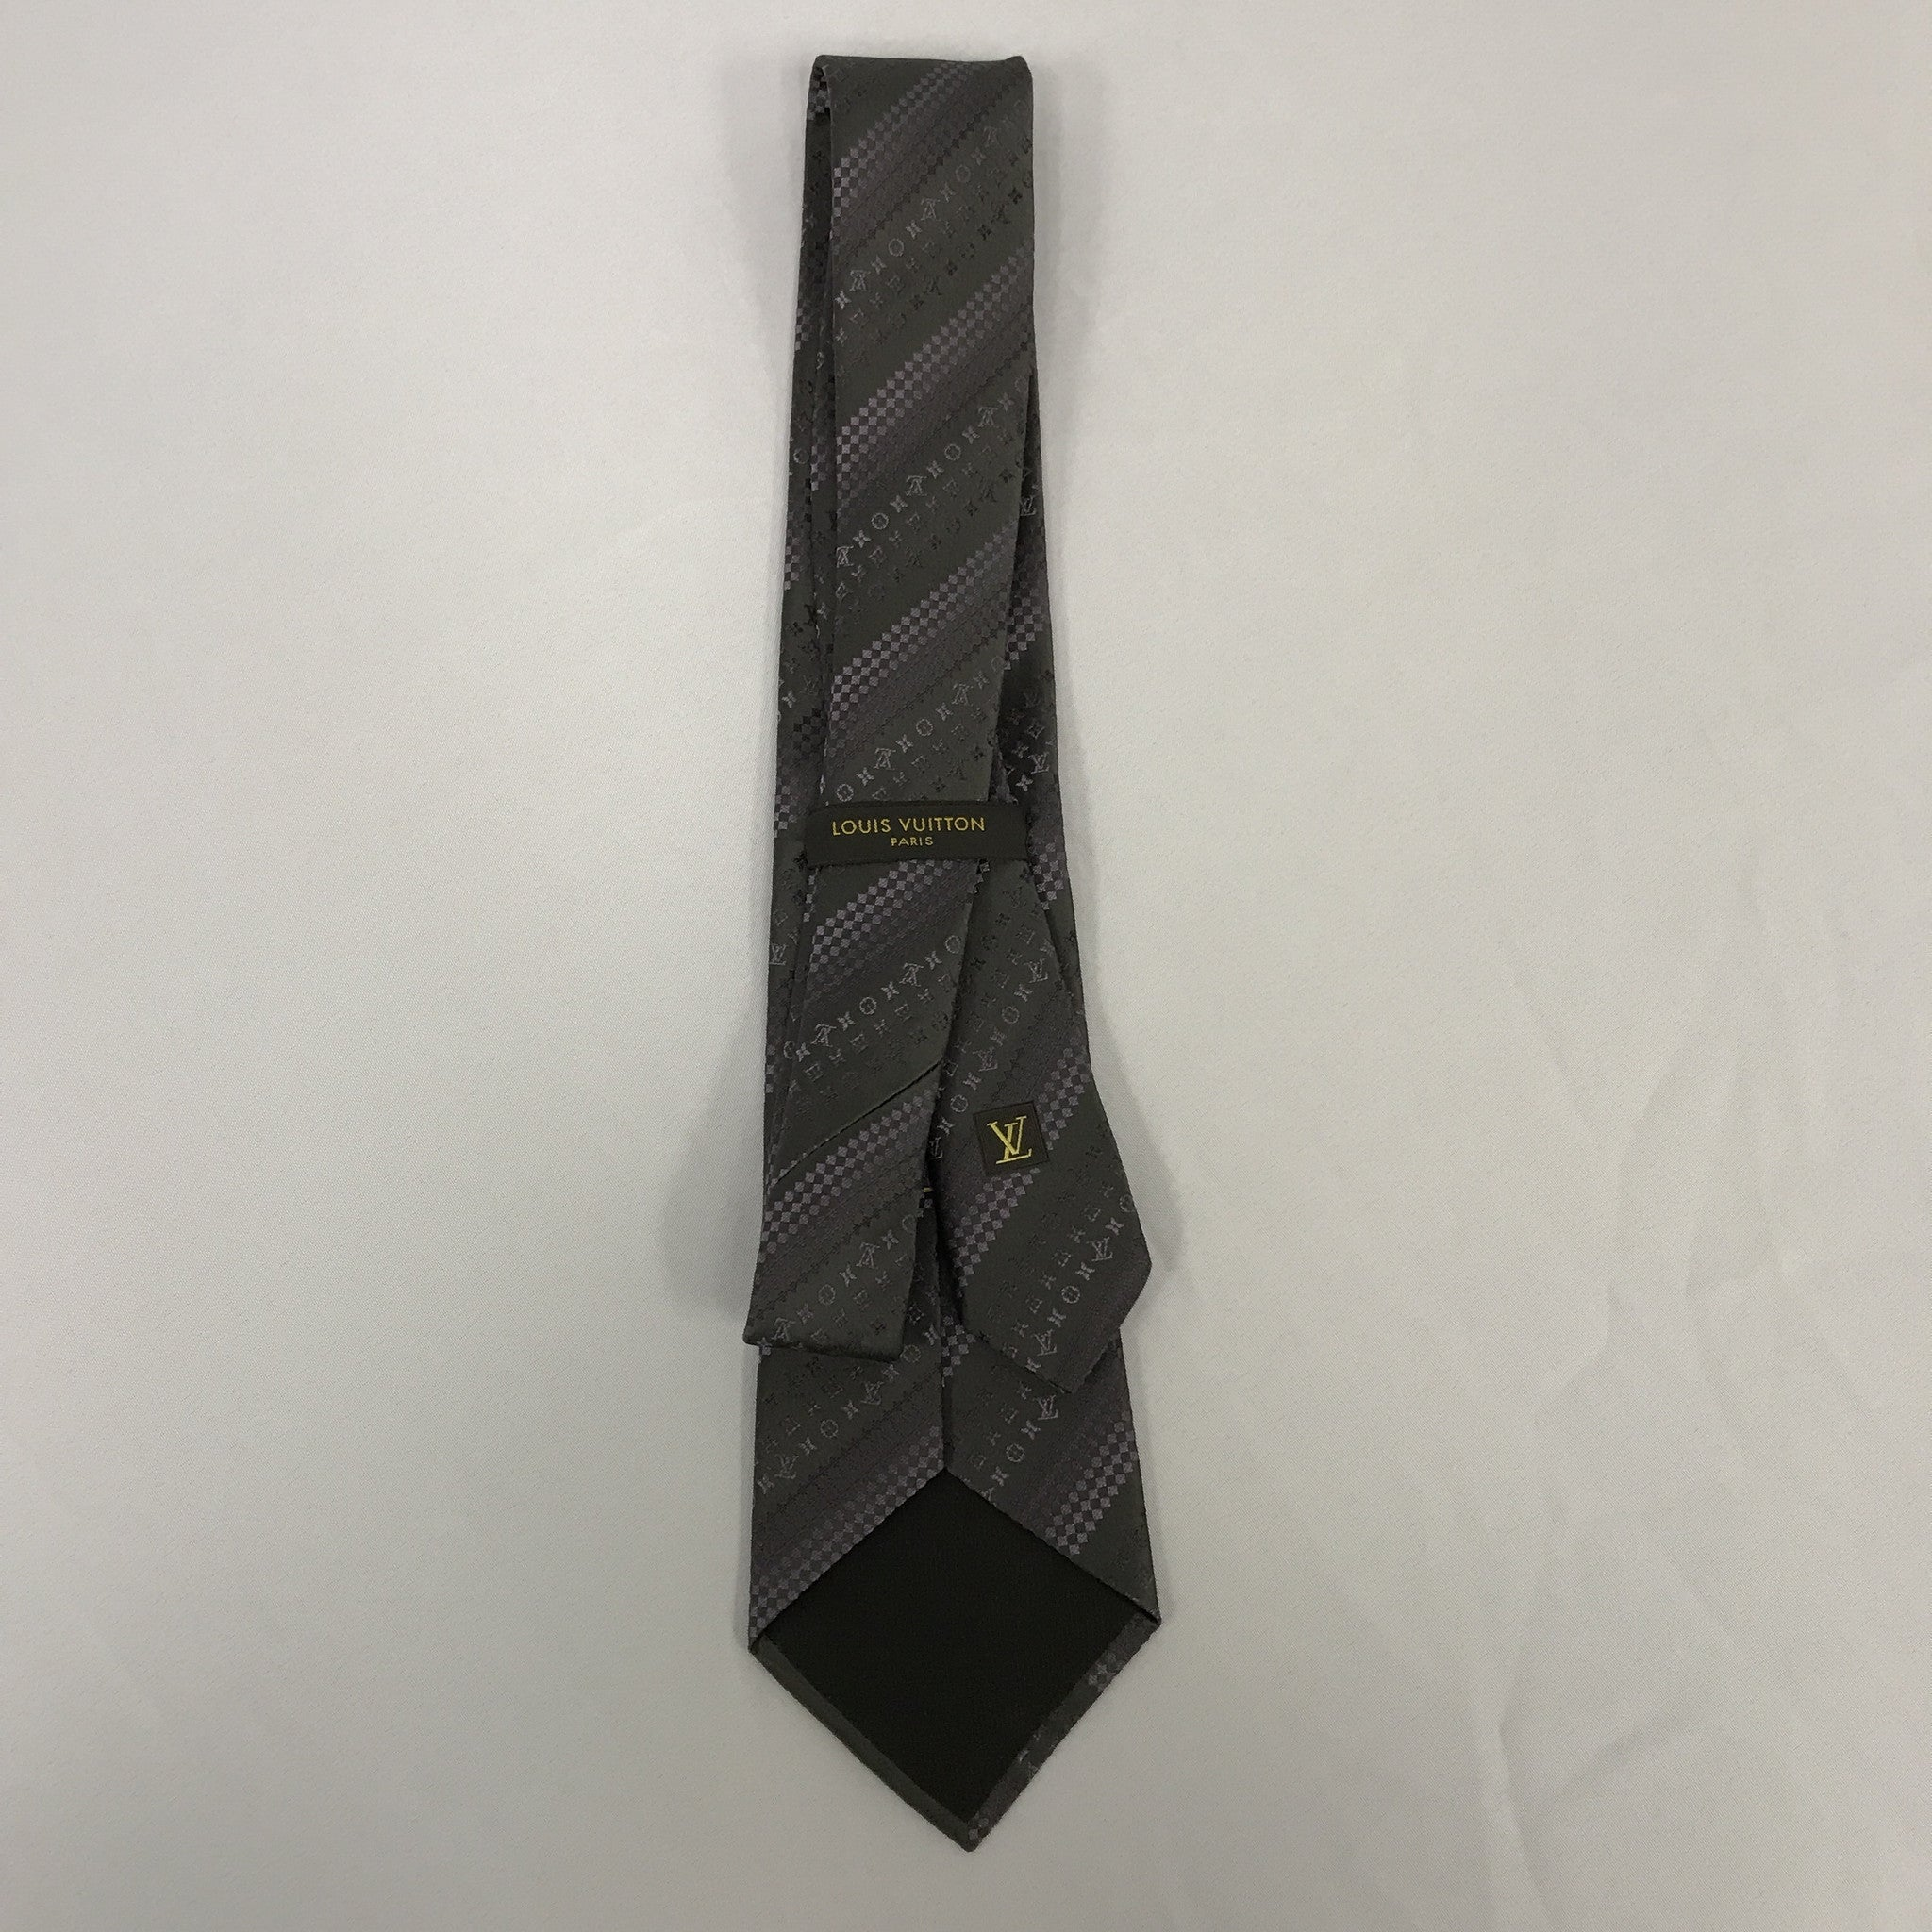 Louis Vuitton Monogram Tie